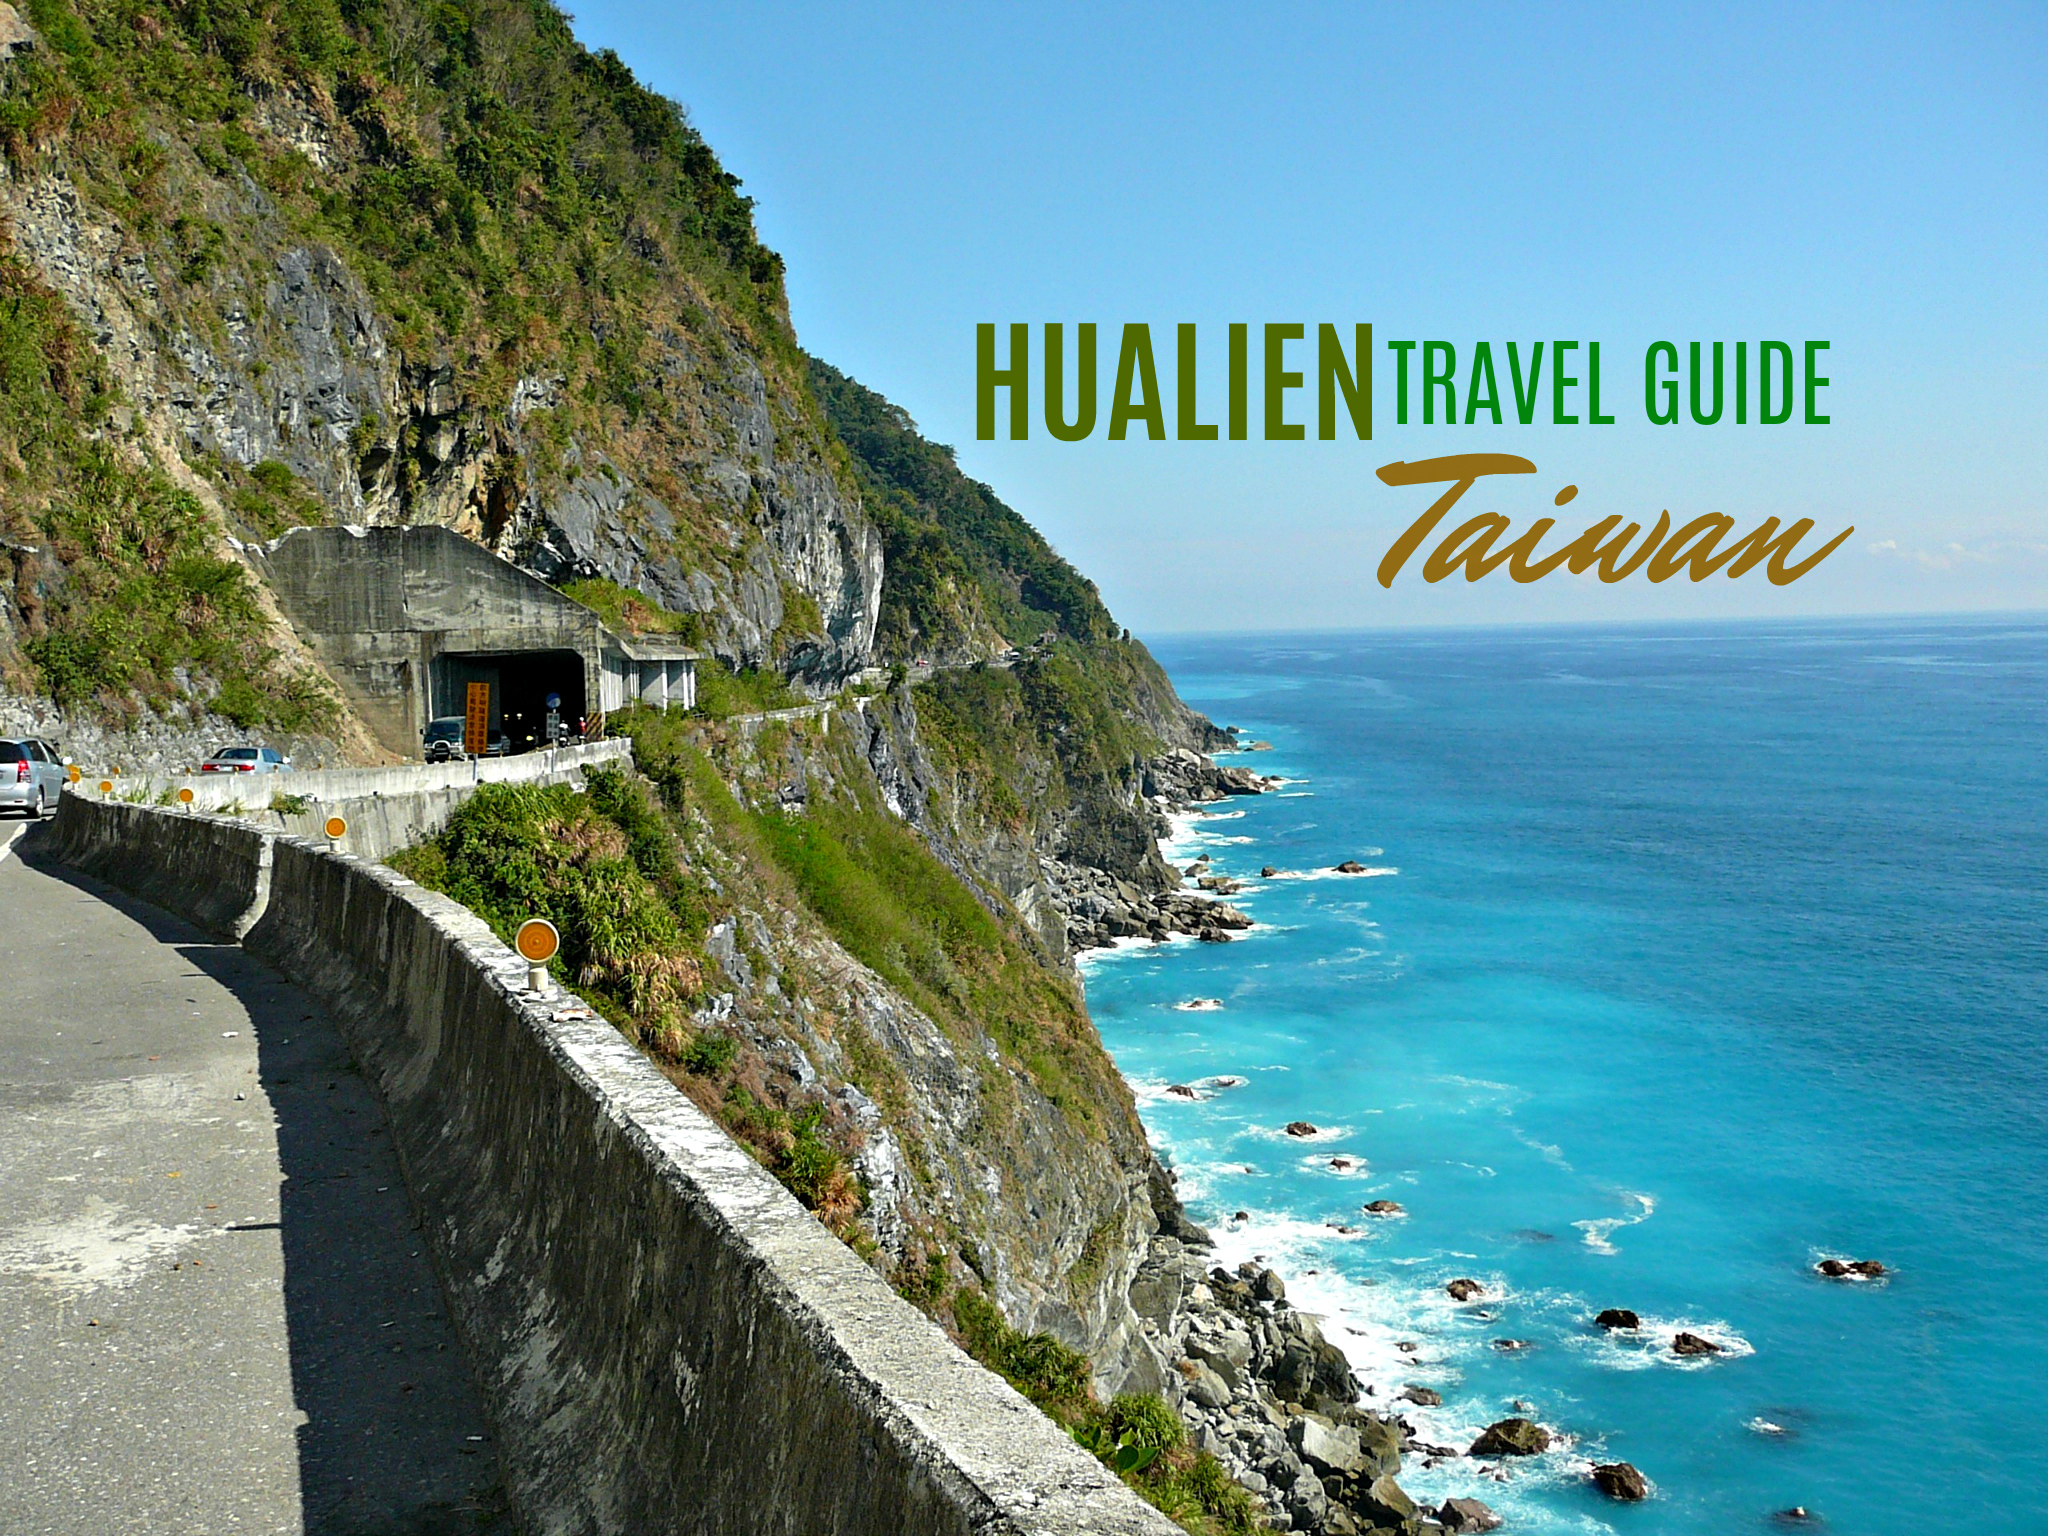 HUALIEN TRAVEL GUIDE BLOG (Budget + Itinerary)